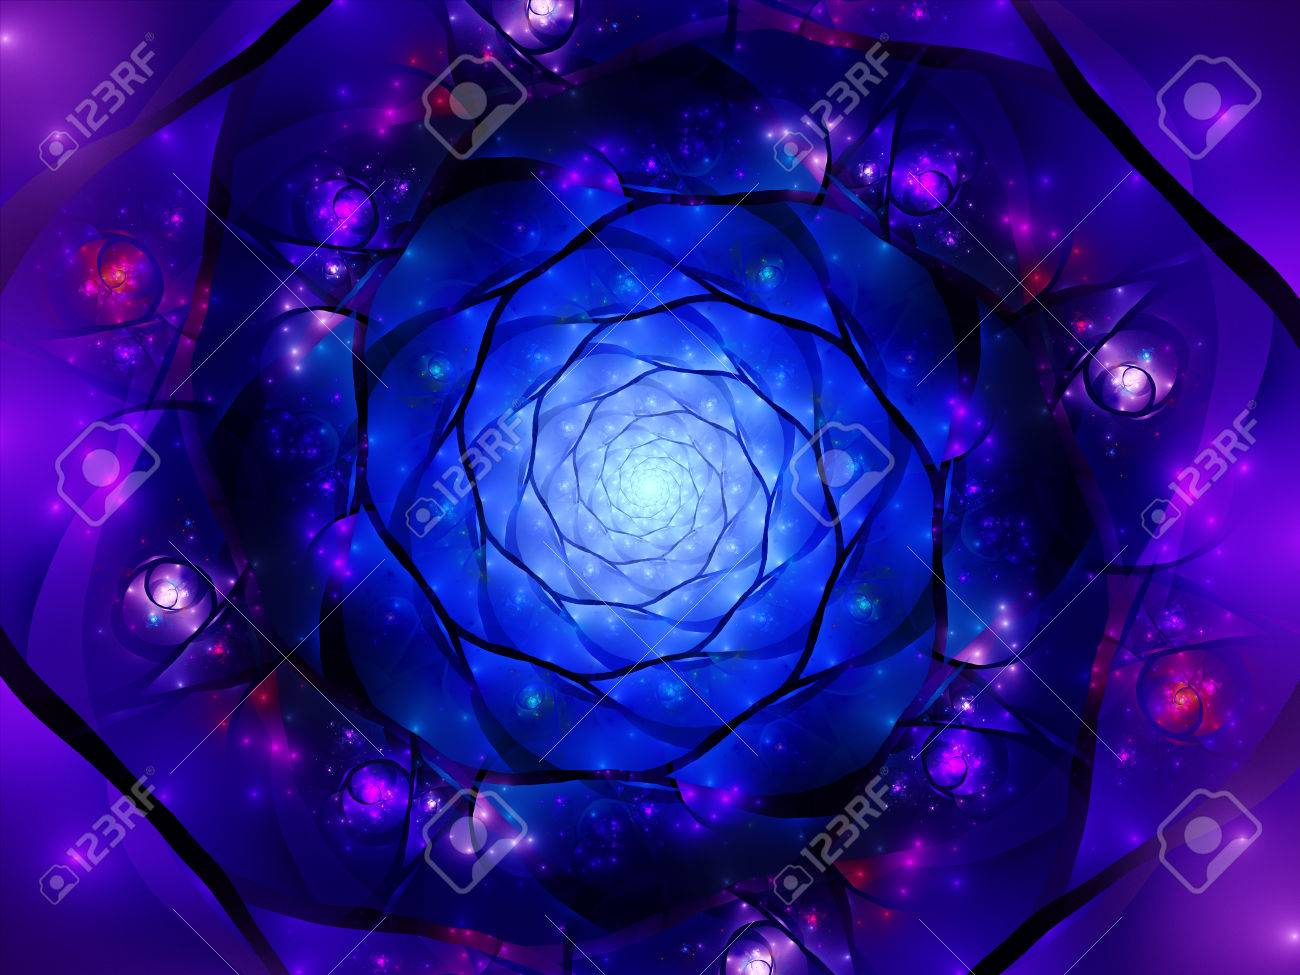 magical zoomed mandala in space fractal computer generated abstract